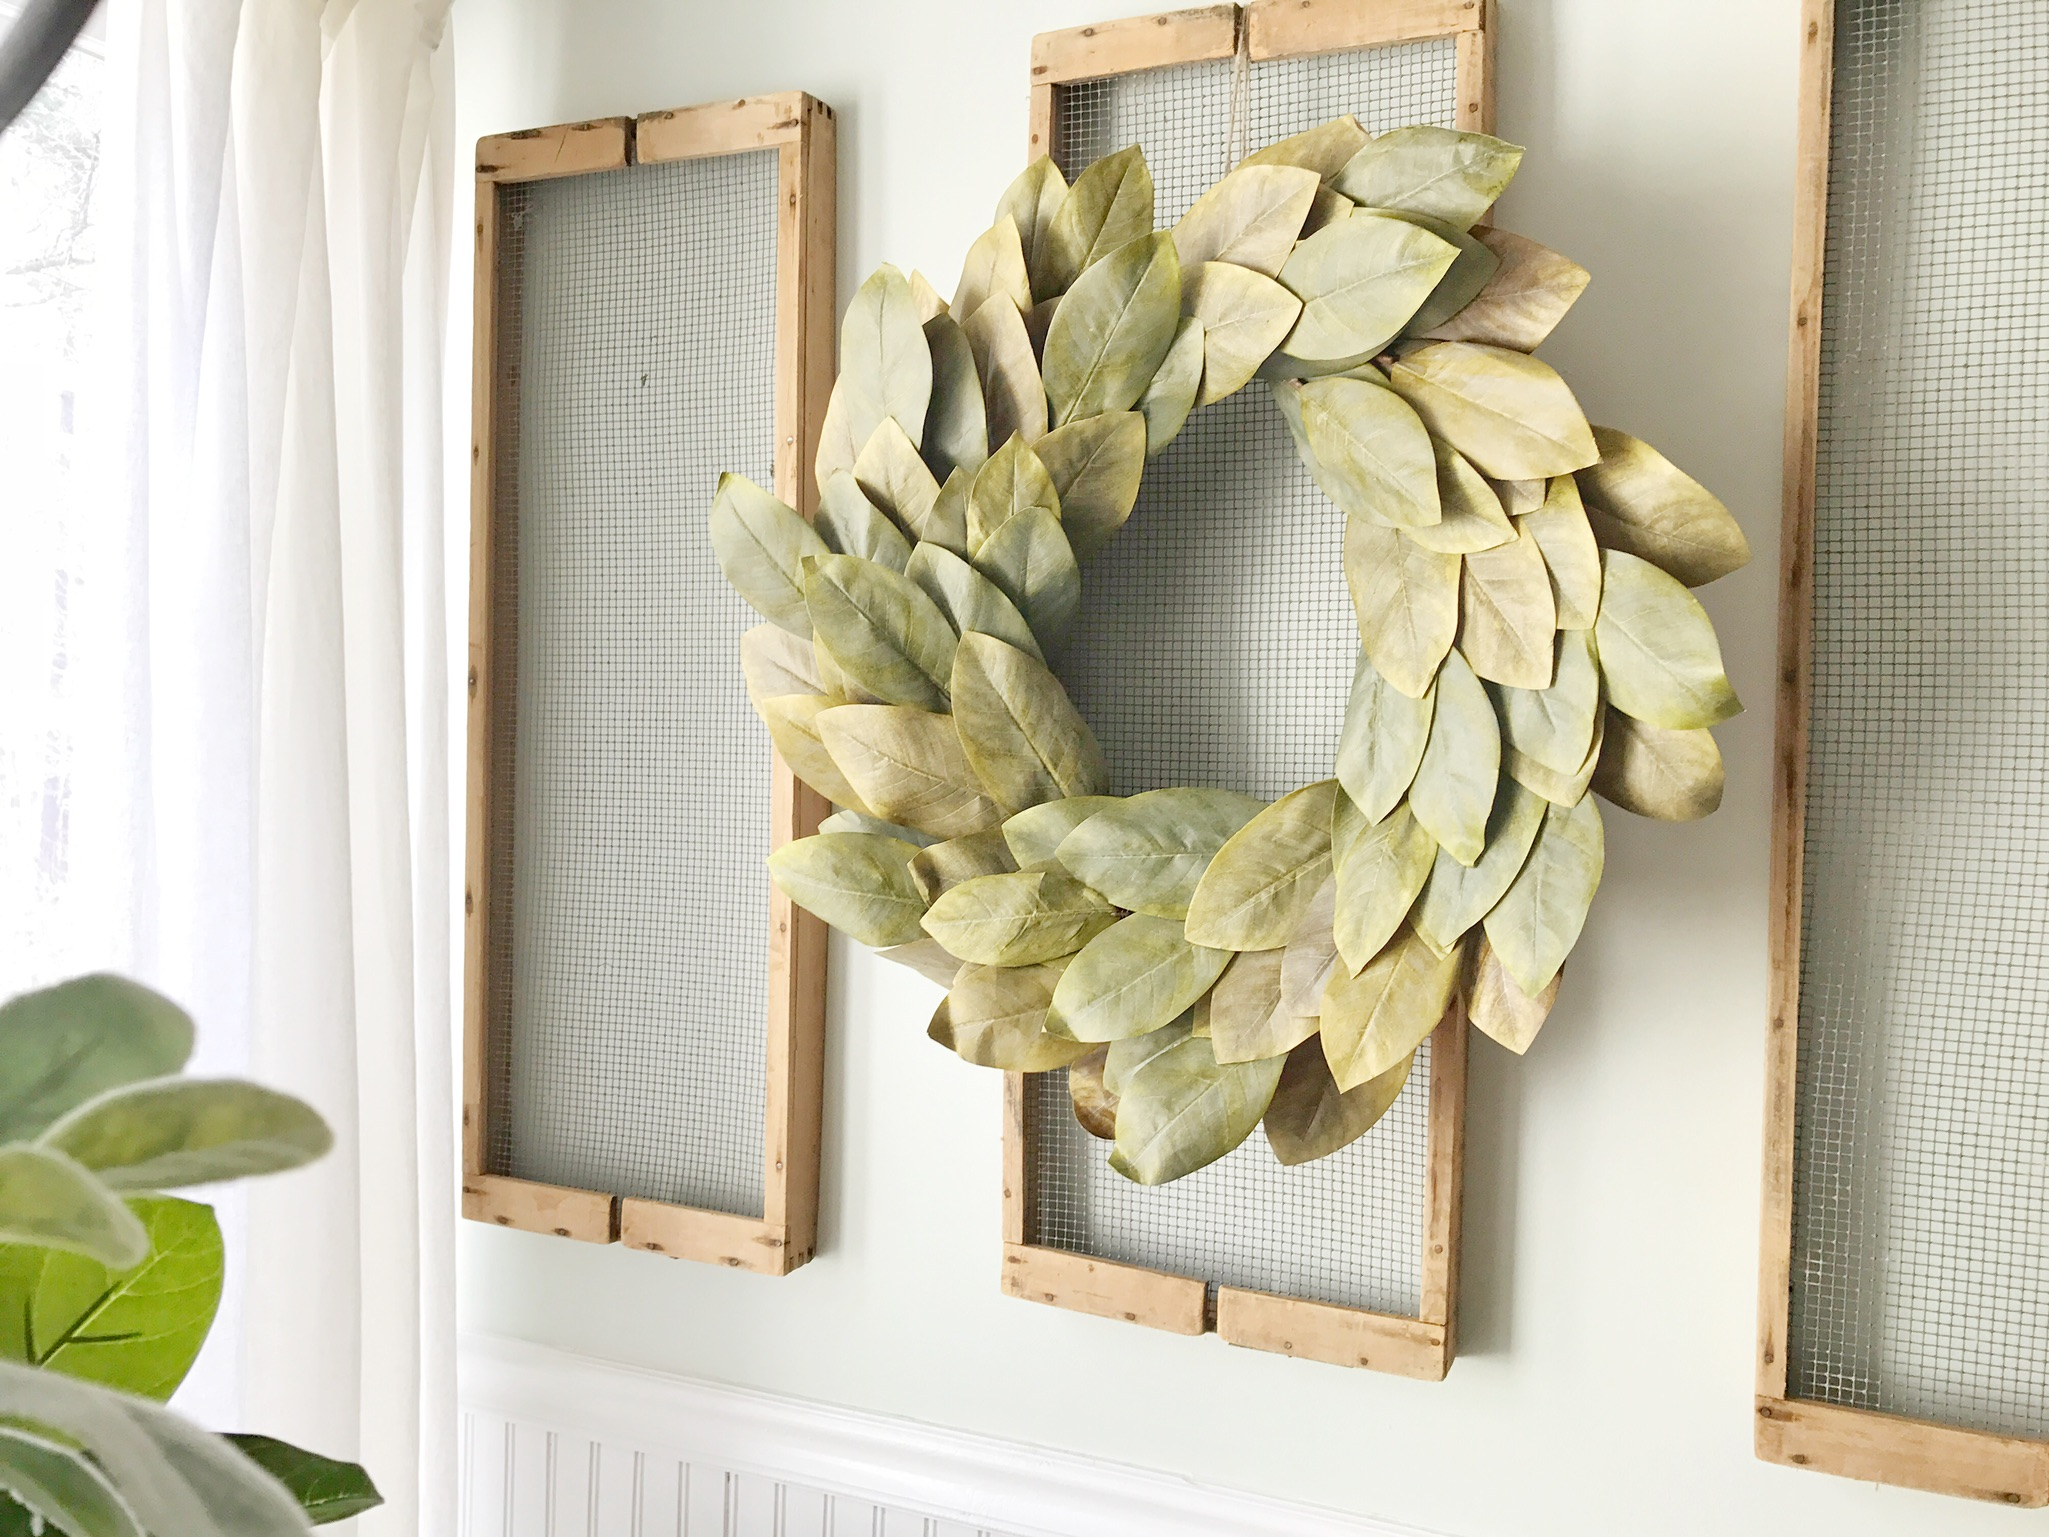 Neutal Decor Advice- How You Can Have a Transitional Home and Keep Your Decor Up Year Round- By Plum Pretty Decor and Design